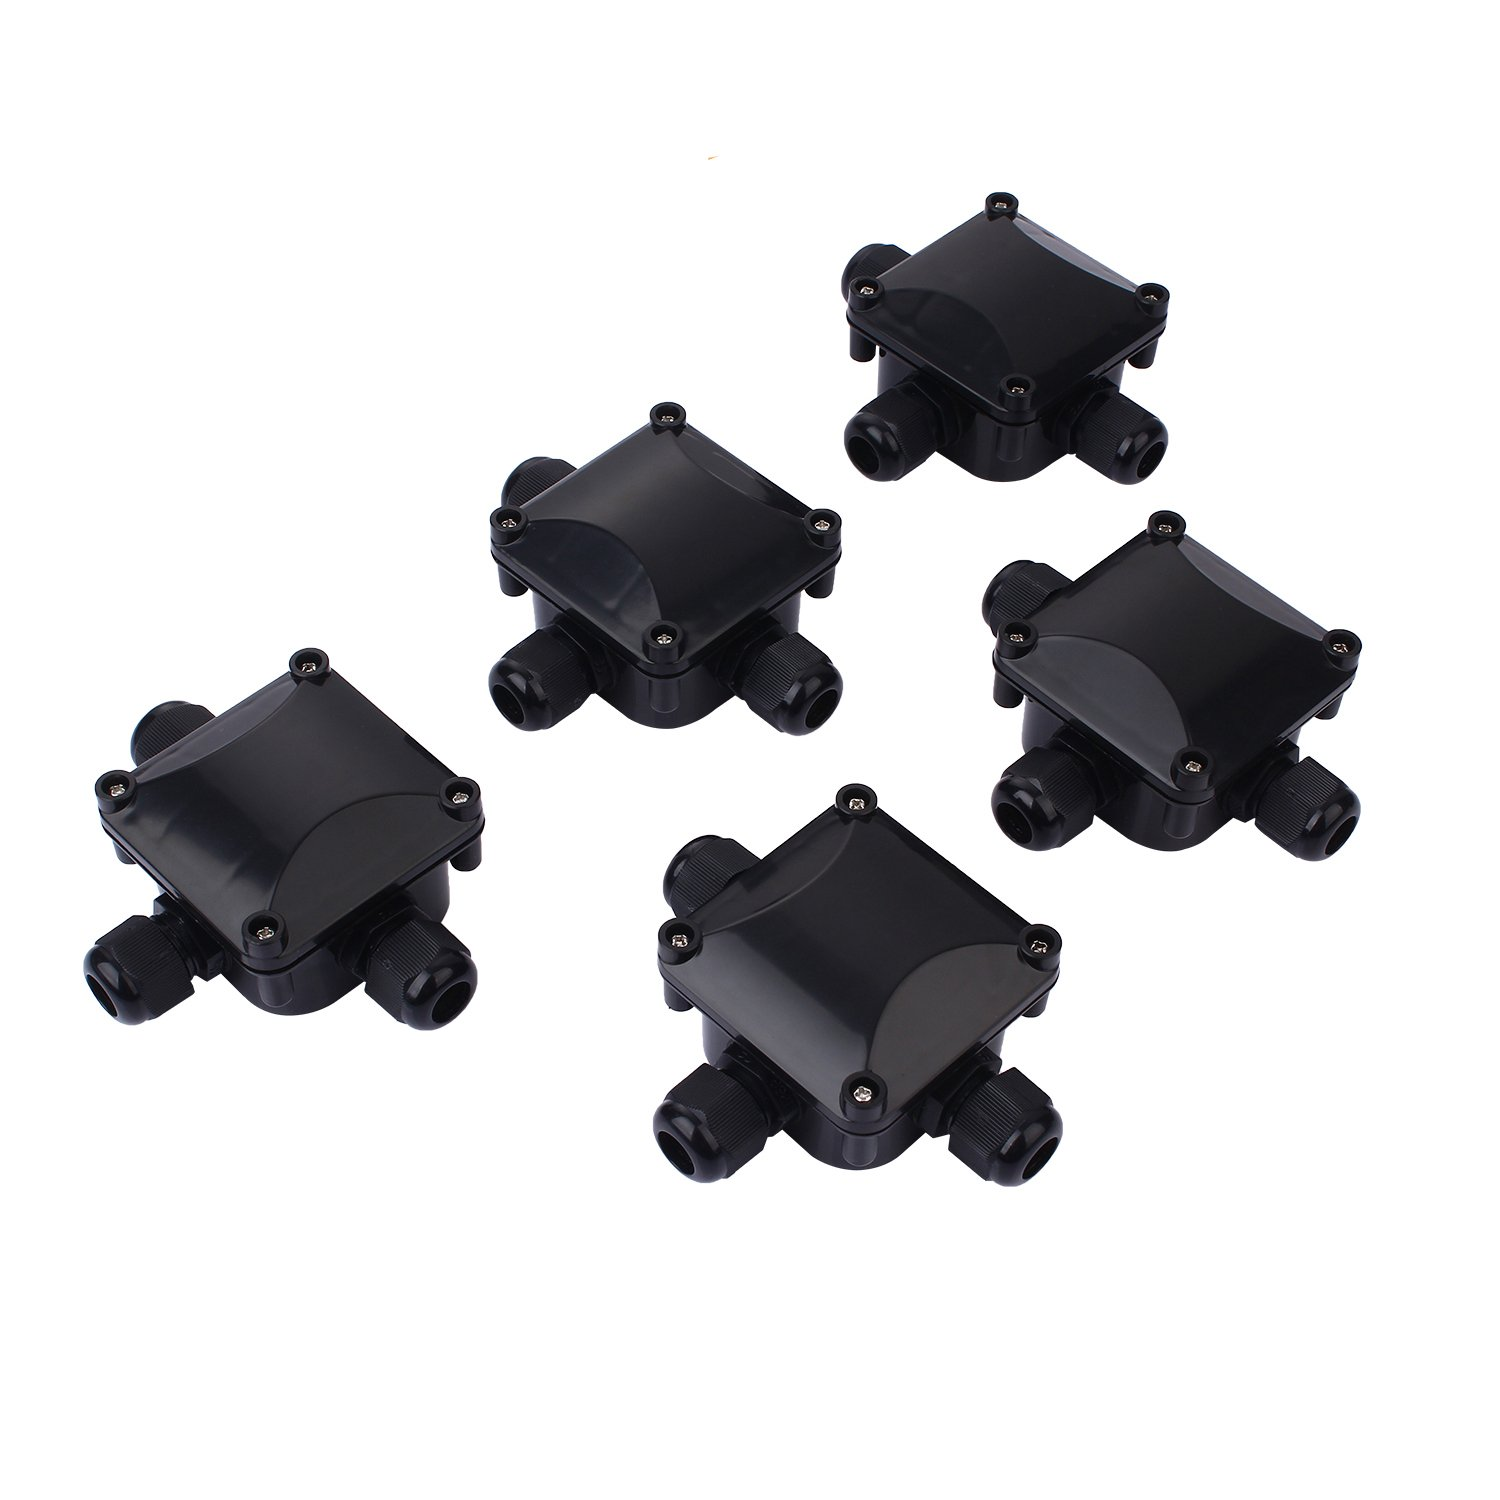 Junction Box IP67 Waterproof 3 Way Cable Connectors Plastic Wire Connector Junction Box Ø 6.5mm-10.5mm (5 Pack. Black) VABNEER